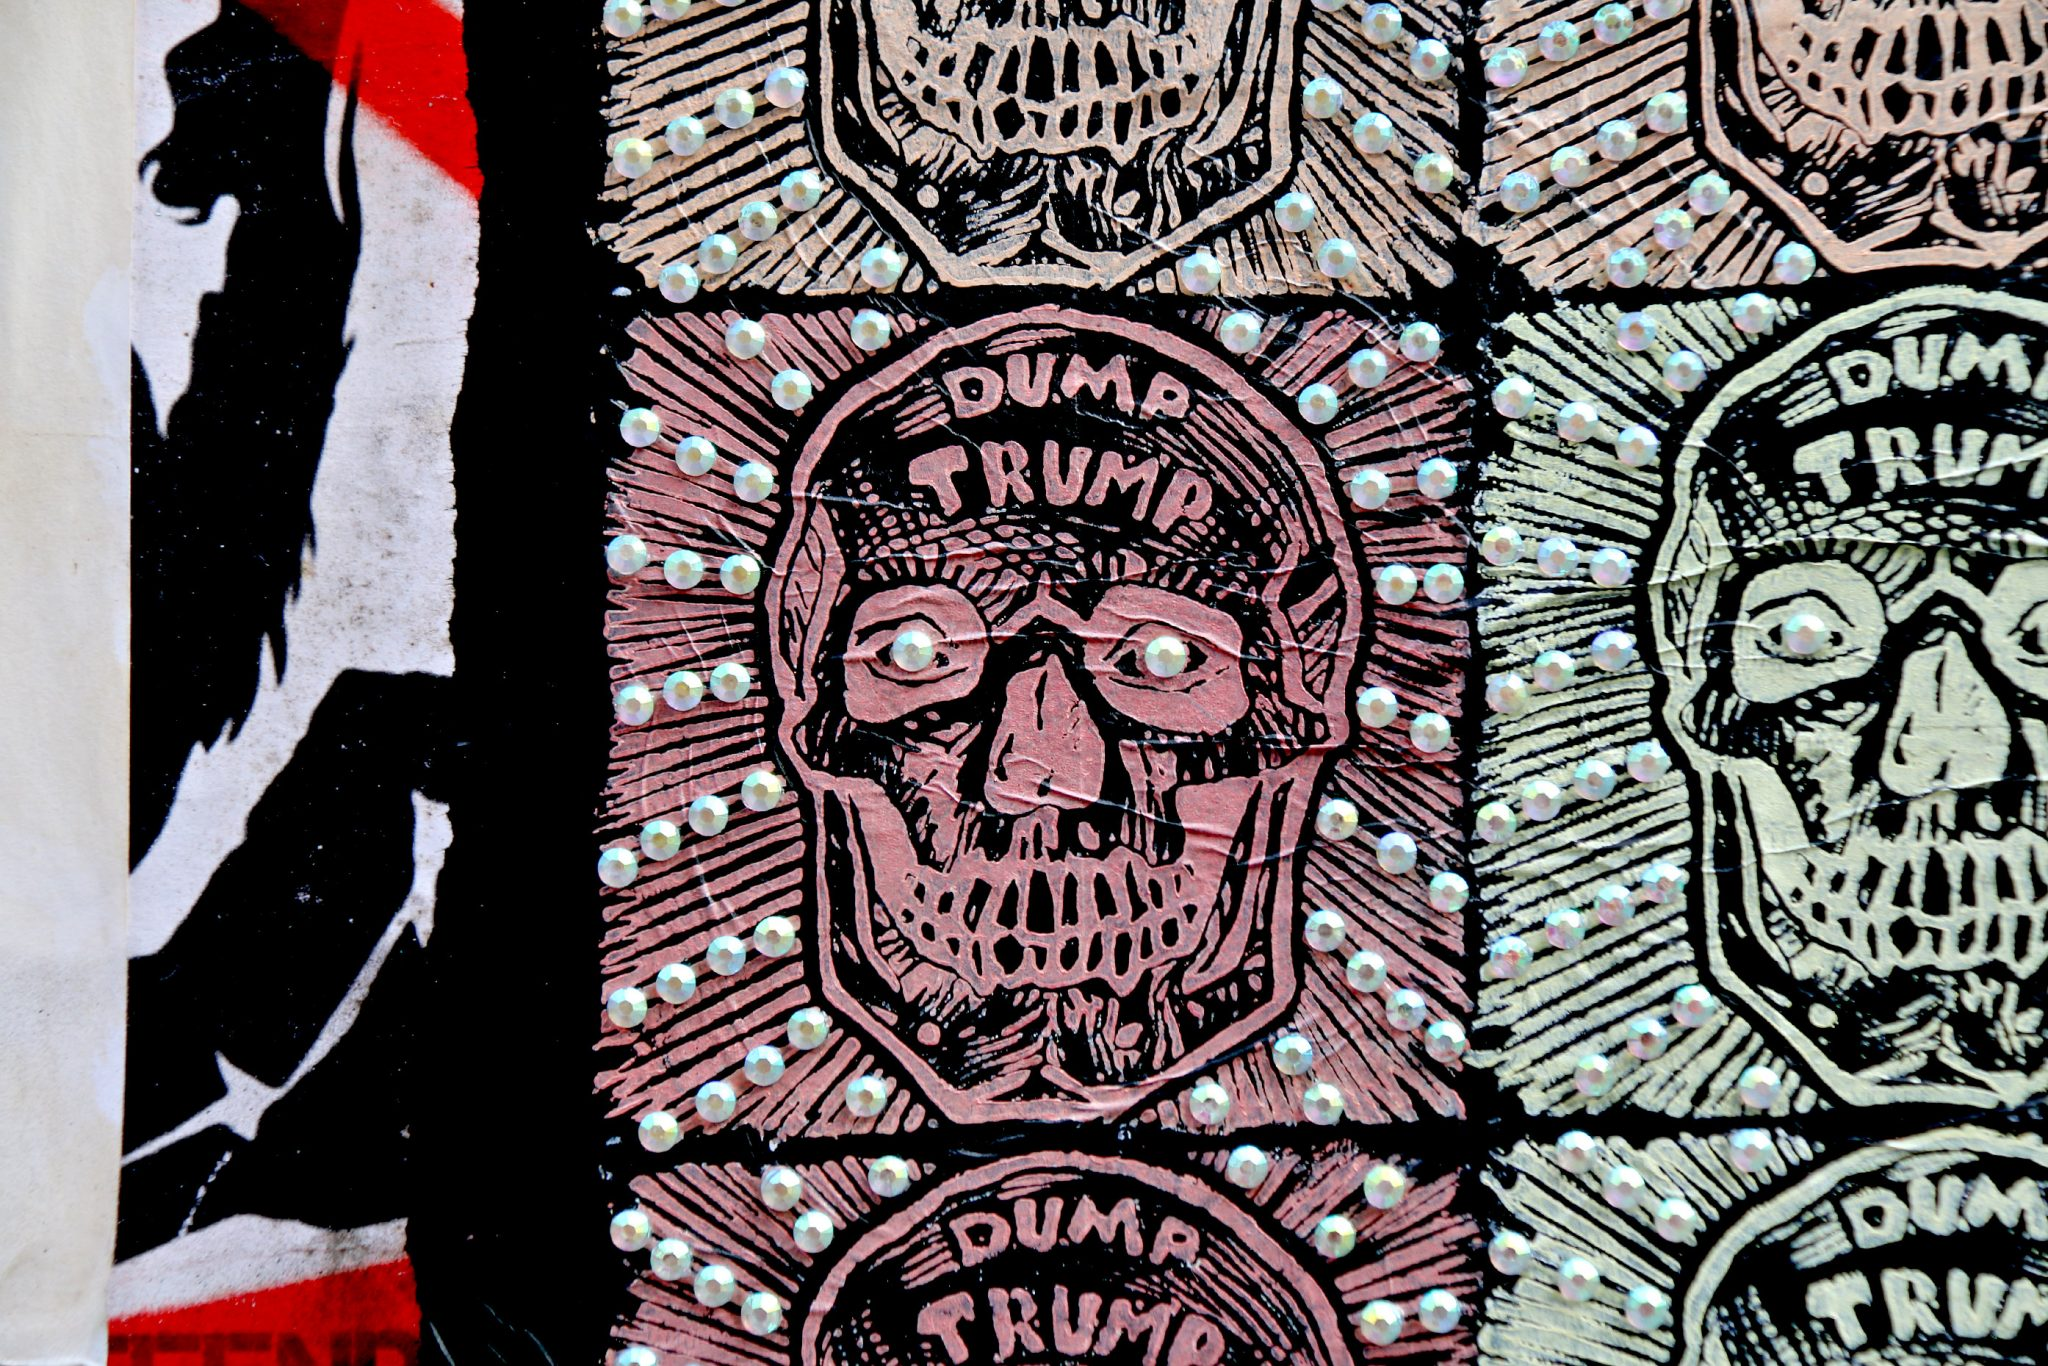 où trouver du street art à shoreditch brick lane uberfub dump trump